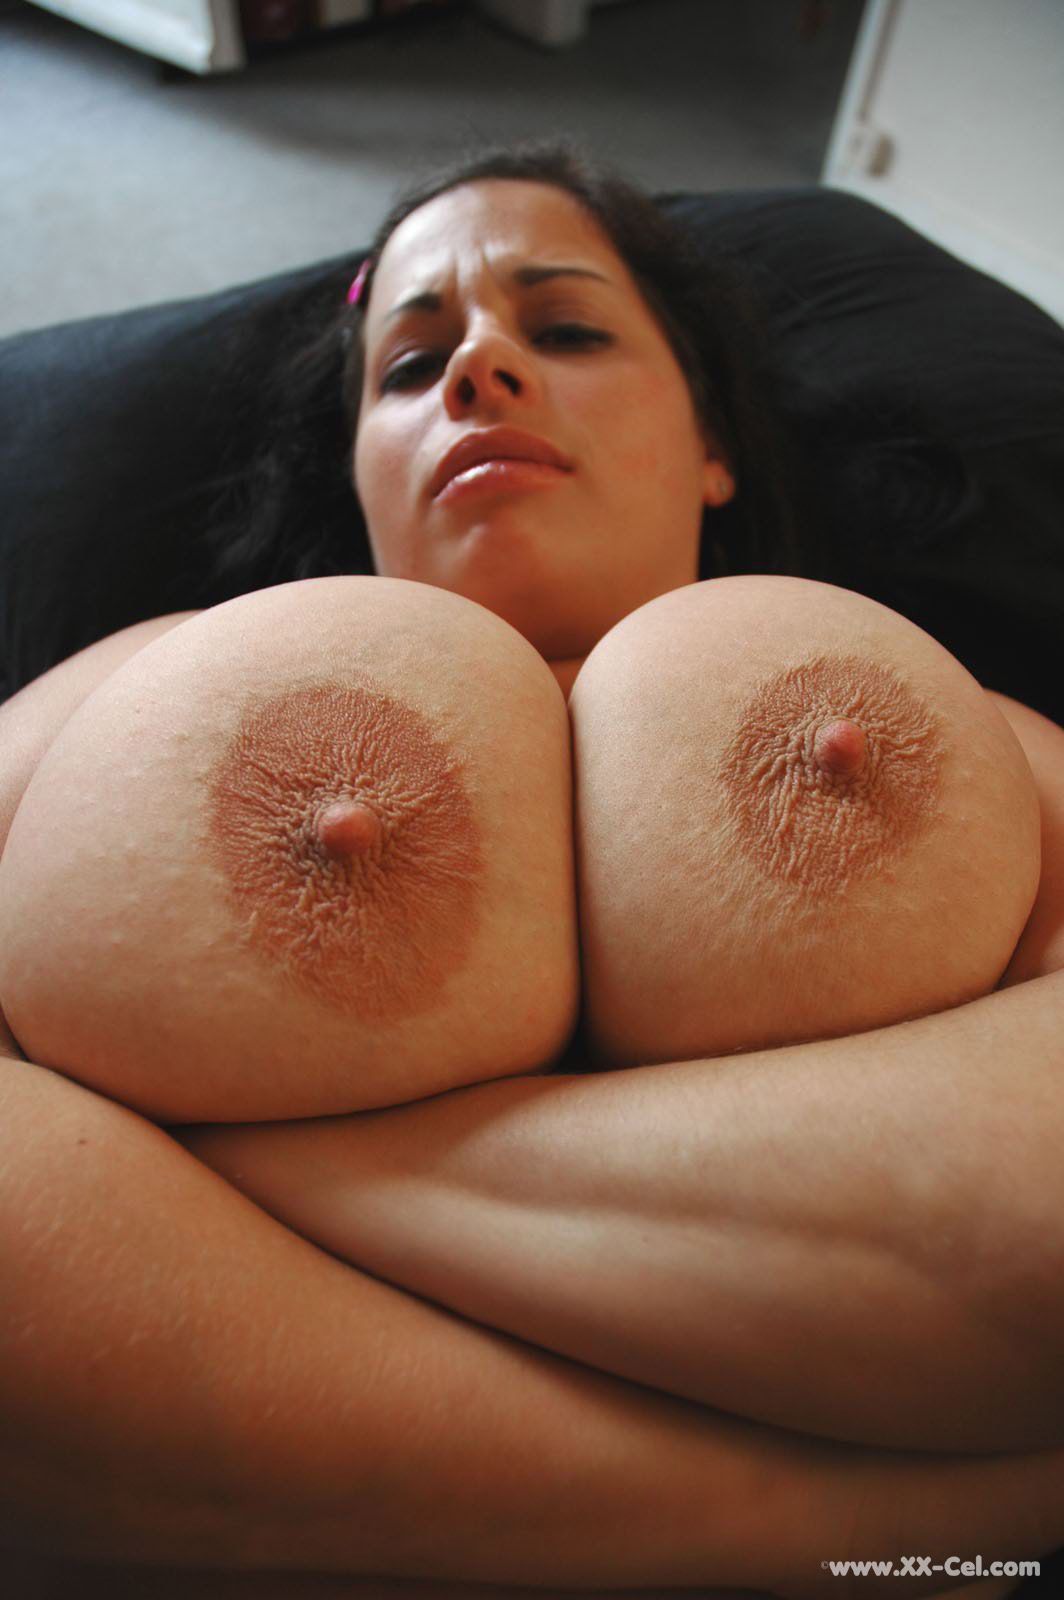 Very giants boobs pictures whom can